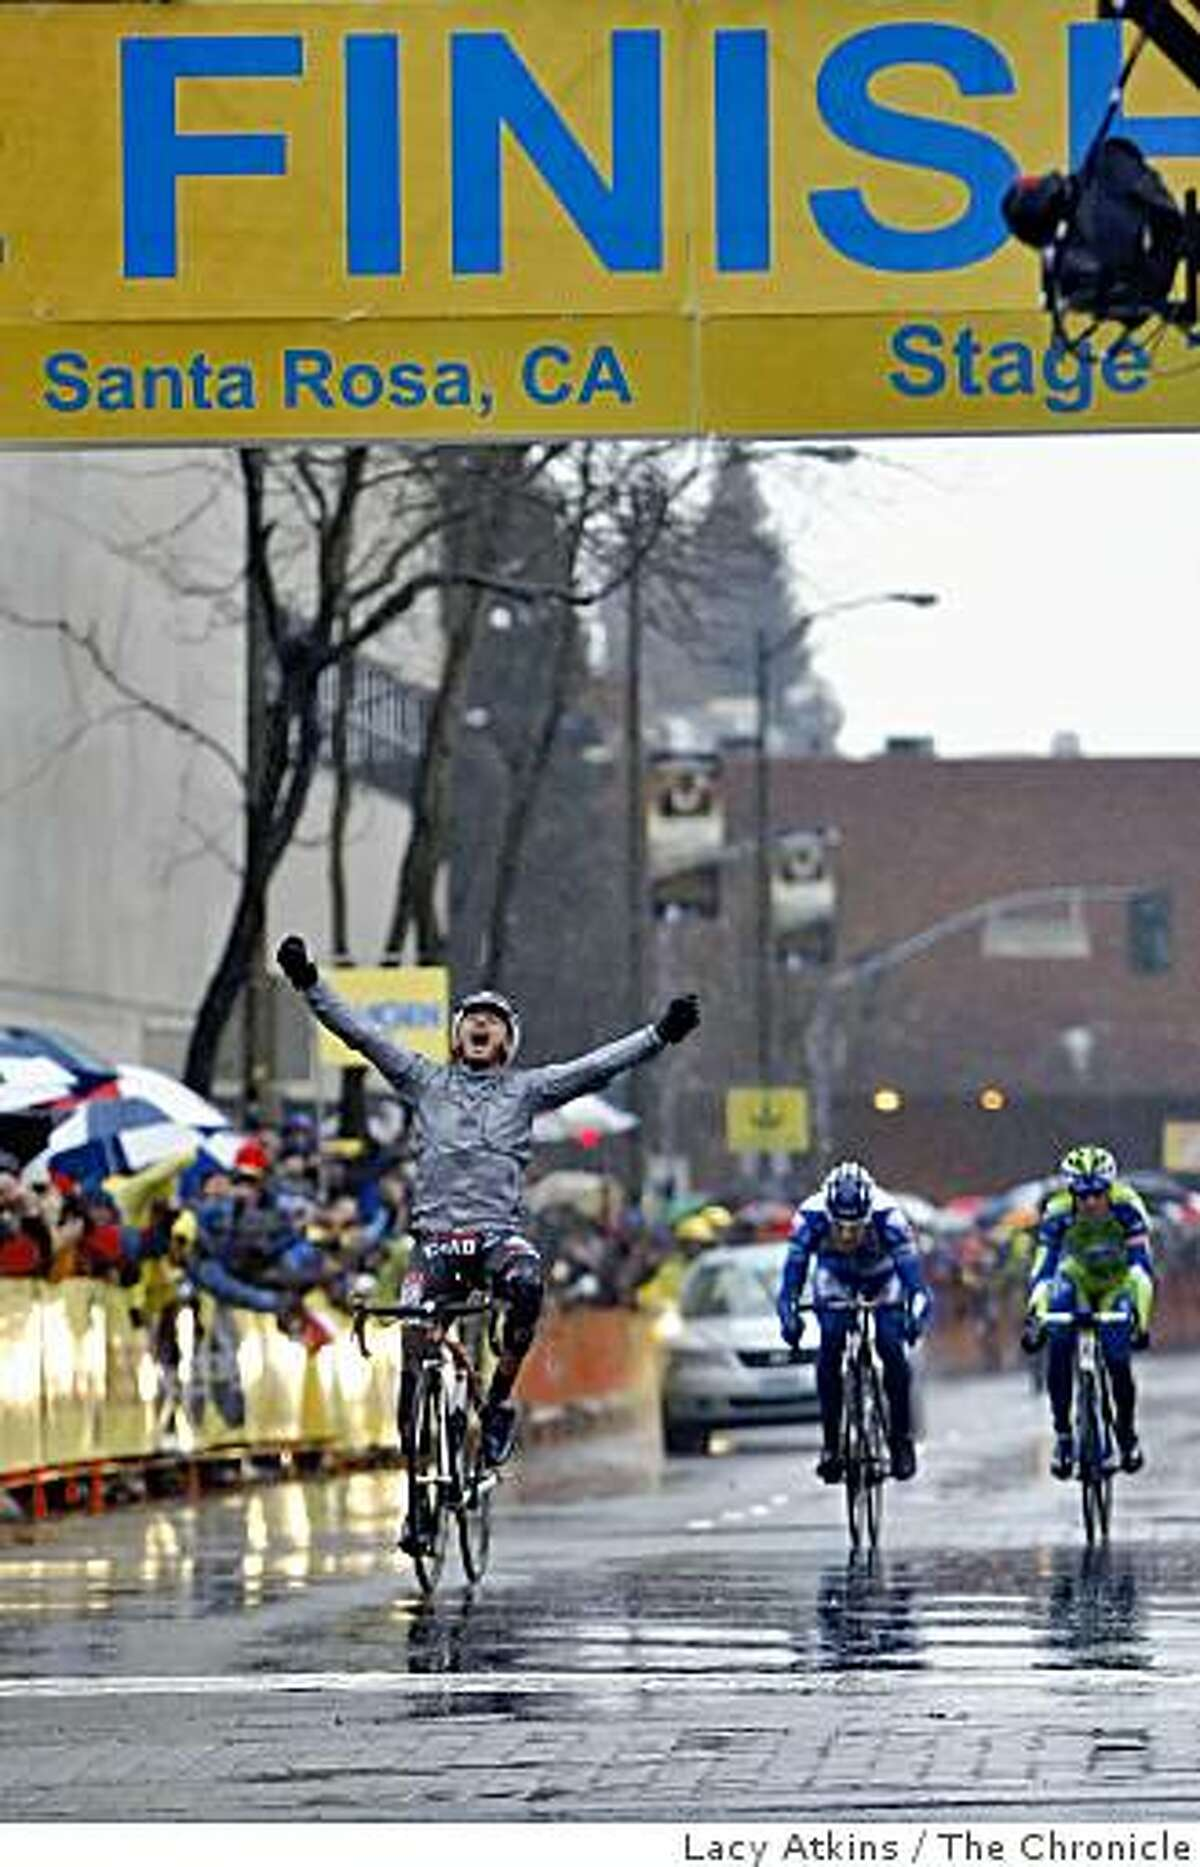 Professional cyclist Francisco Mancebo crosses the finish line as the winner of the first stage of the Amgen Tour of California, Sunday Feb. 15, 2009, in Santa Rosa, Calif.